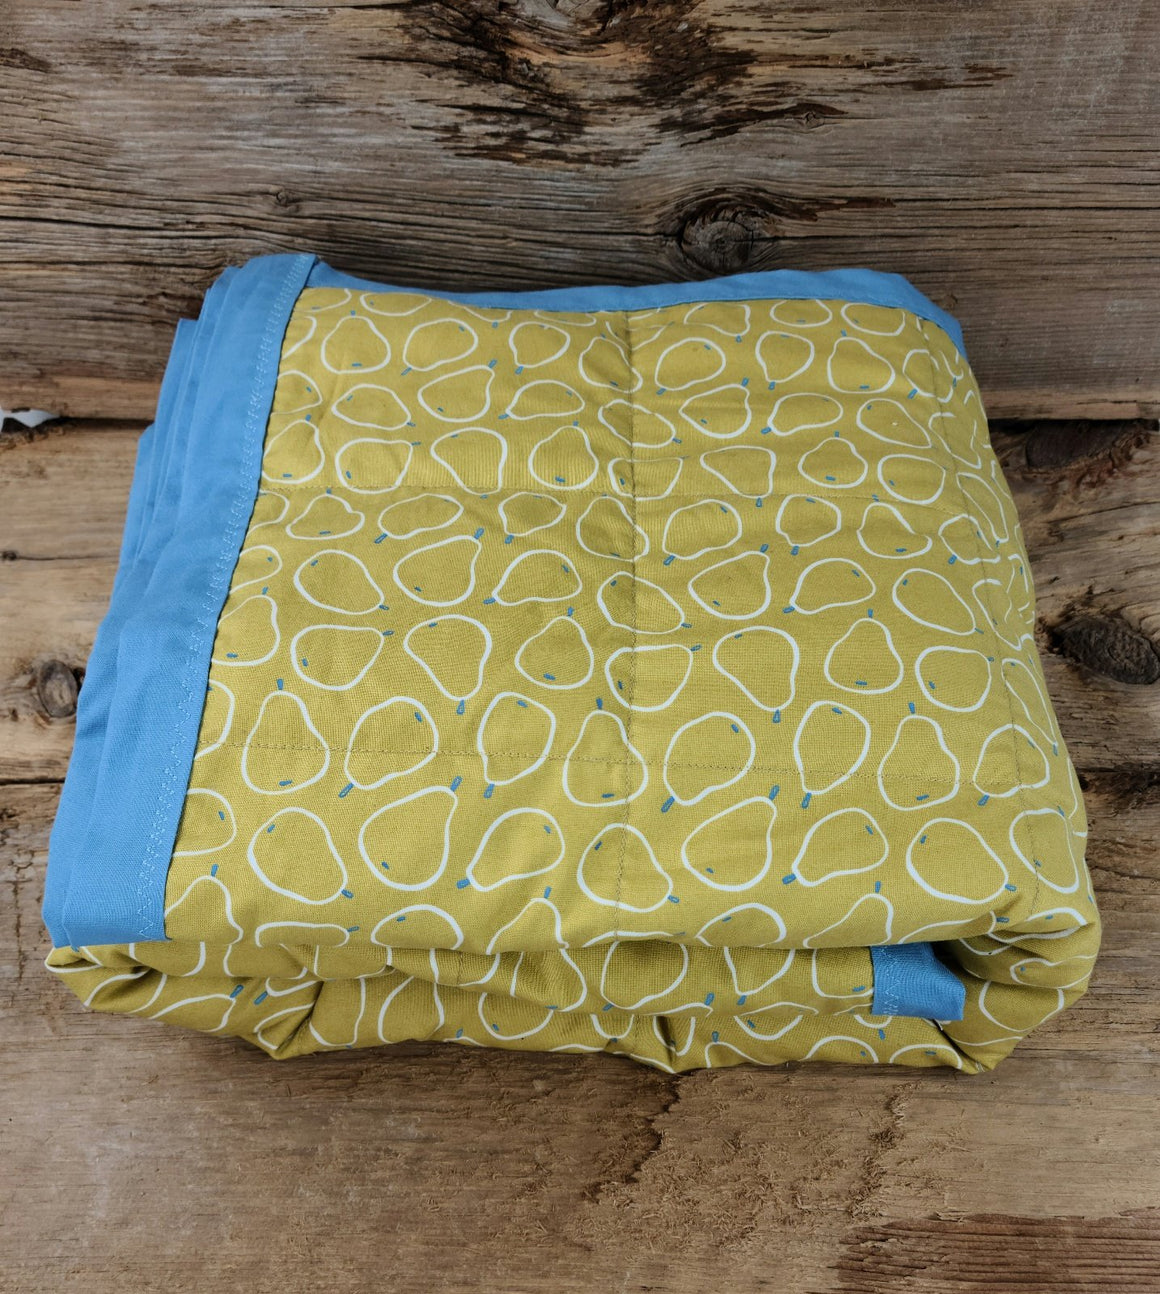 Ready to ship 11.6lbs Single/Twin Weighted Blanket